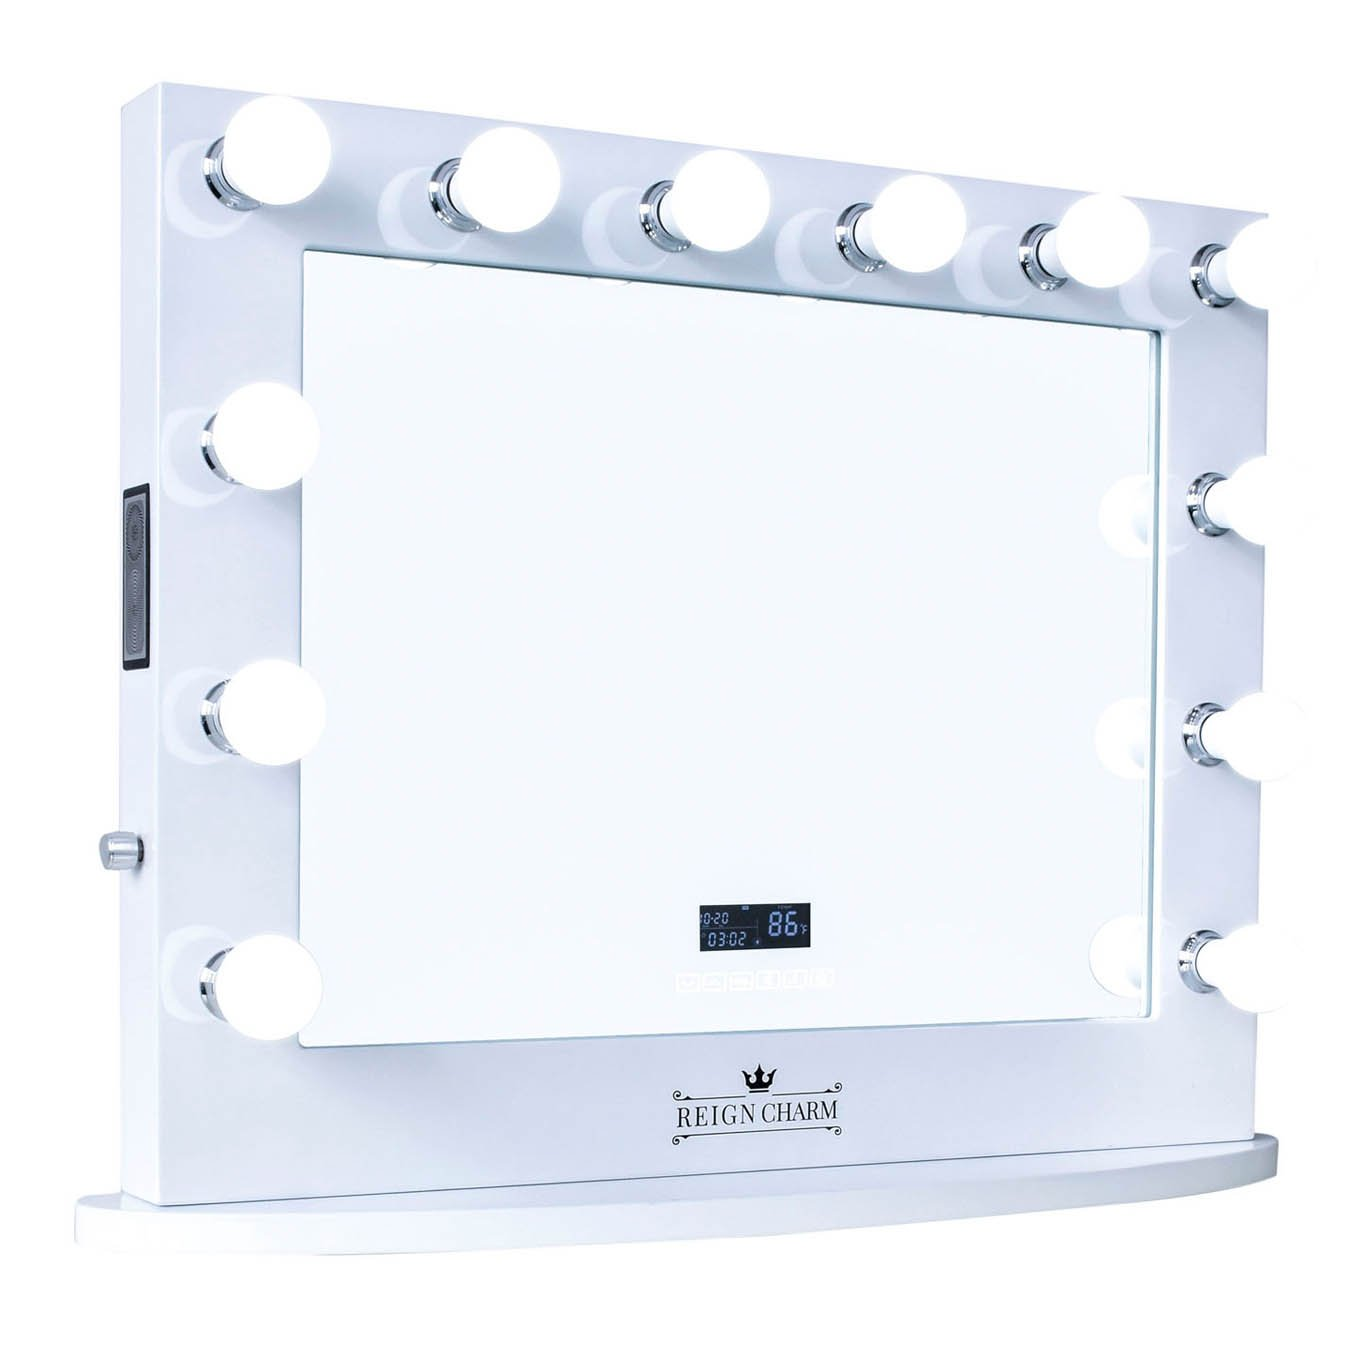 ReignCharm Hollywood Vanity Mirror with BT Speakers, 12 LED Lights, Dual Outlets & USB, 32-inches x 27-inches, White